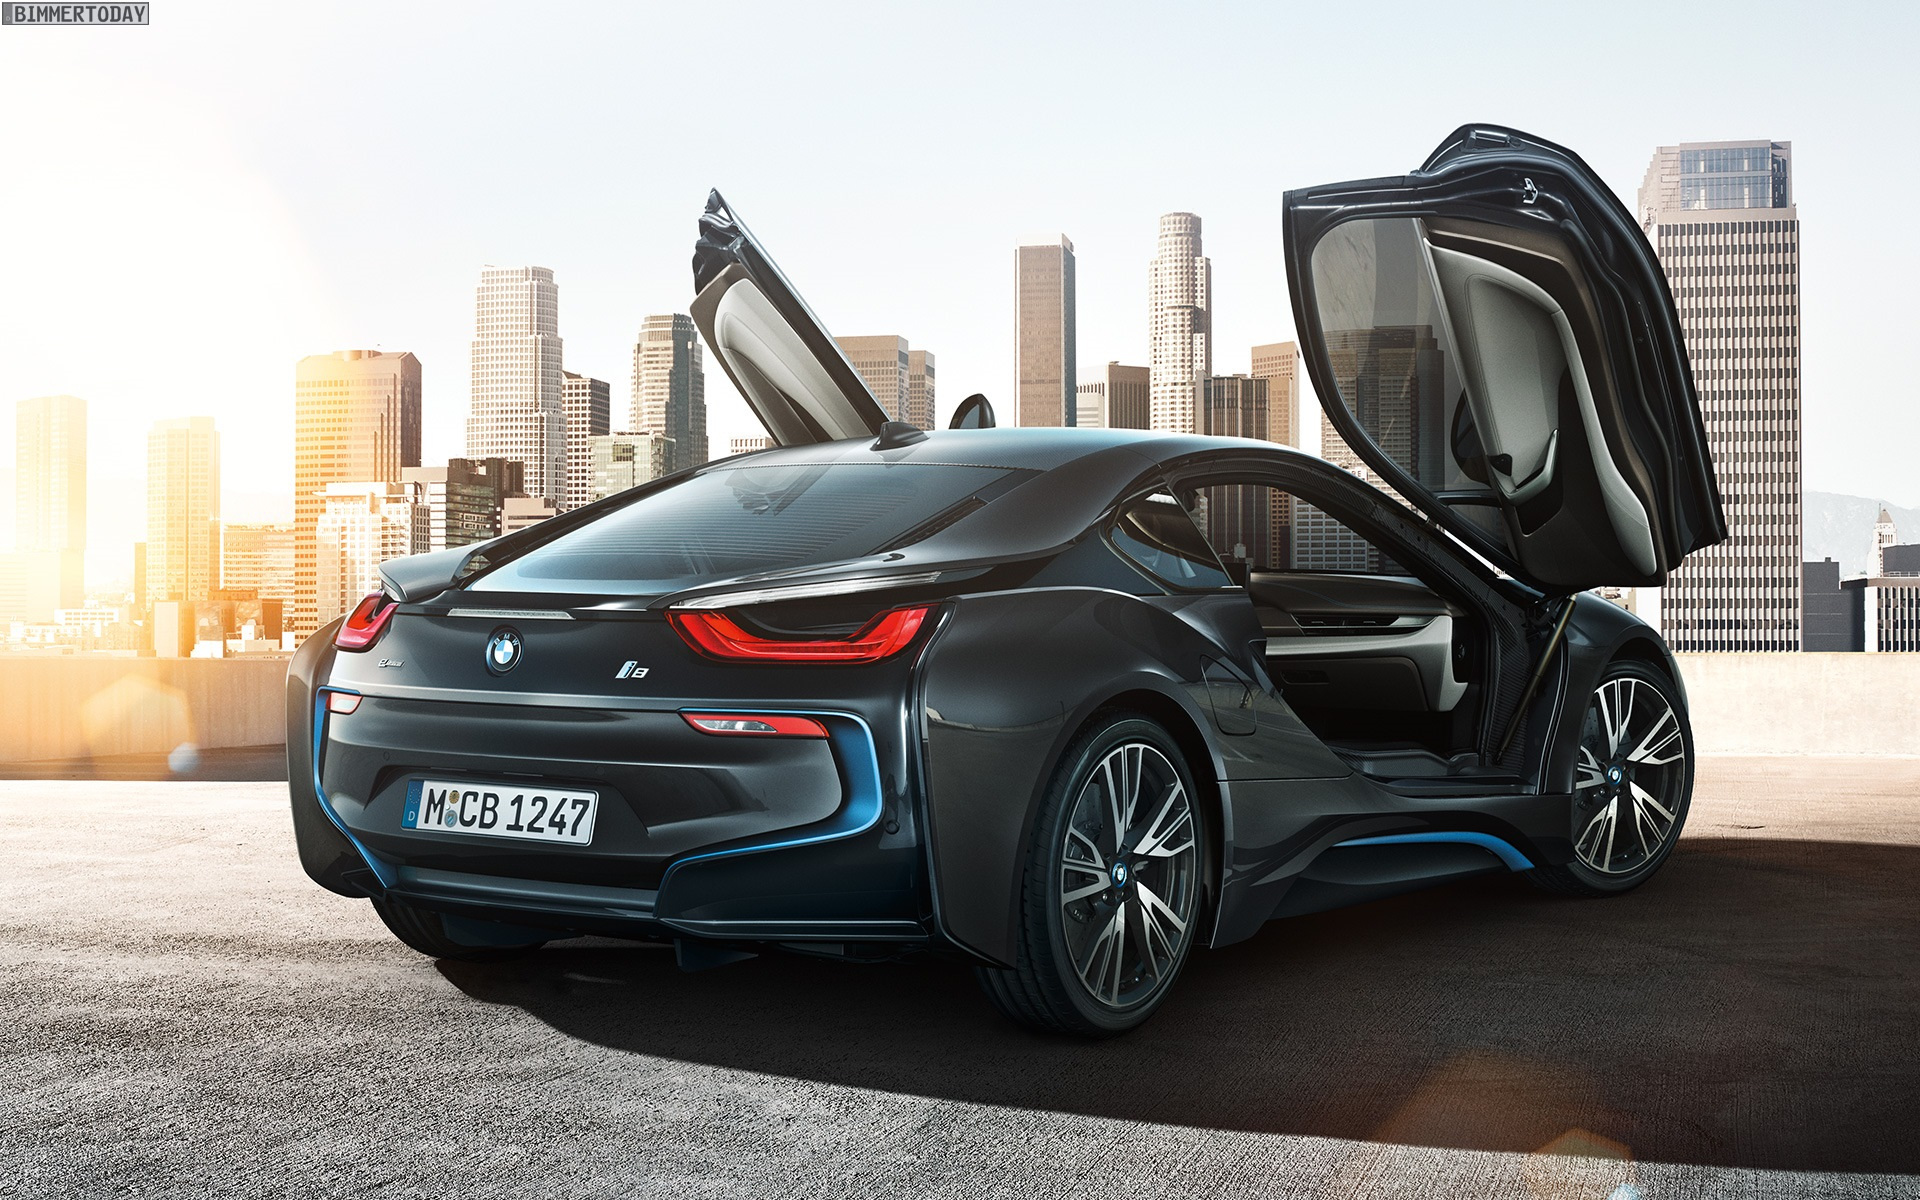 bmw i8 pure impulse ausstattungs paket erh ht preis auf. Black Bedroom Furniture Sets. Home Design Ideas